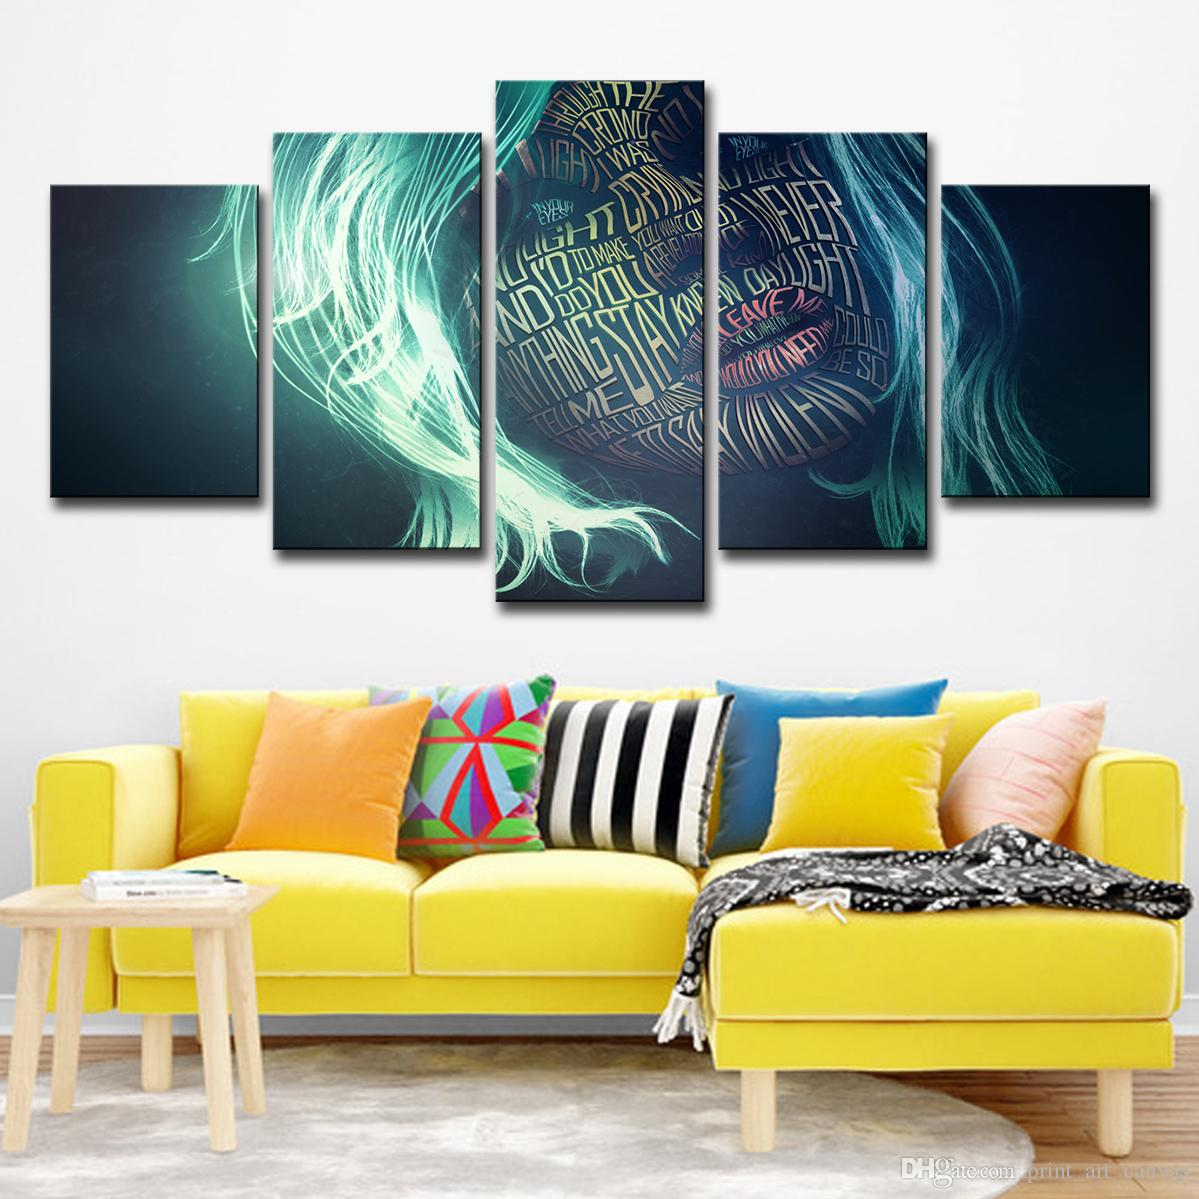 Wall Art Posters For Living Room Home Decor Abstract Pictures 5 Pieces Women Letter Graffiti Face Canvas Painting